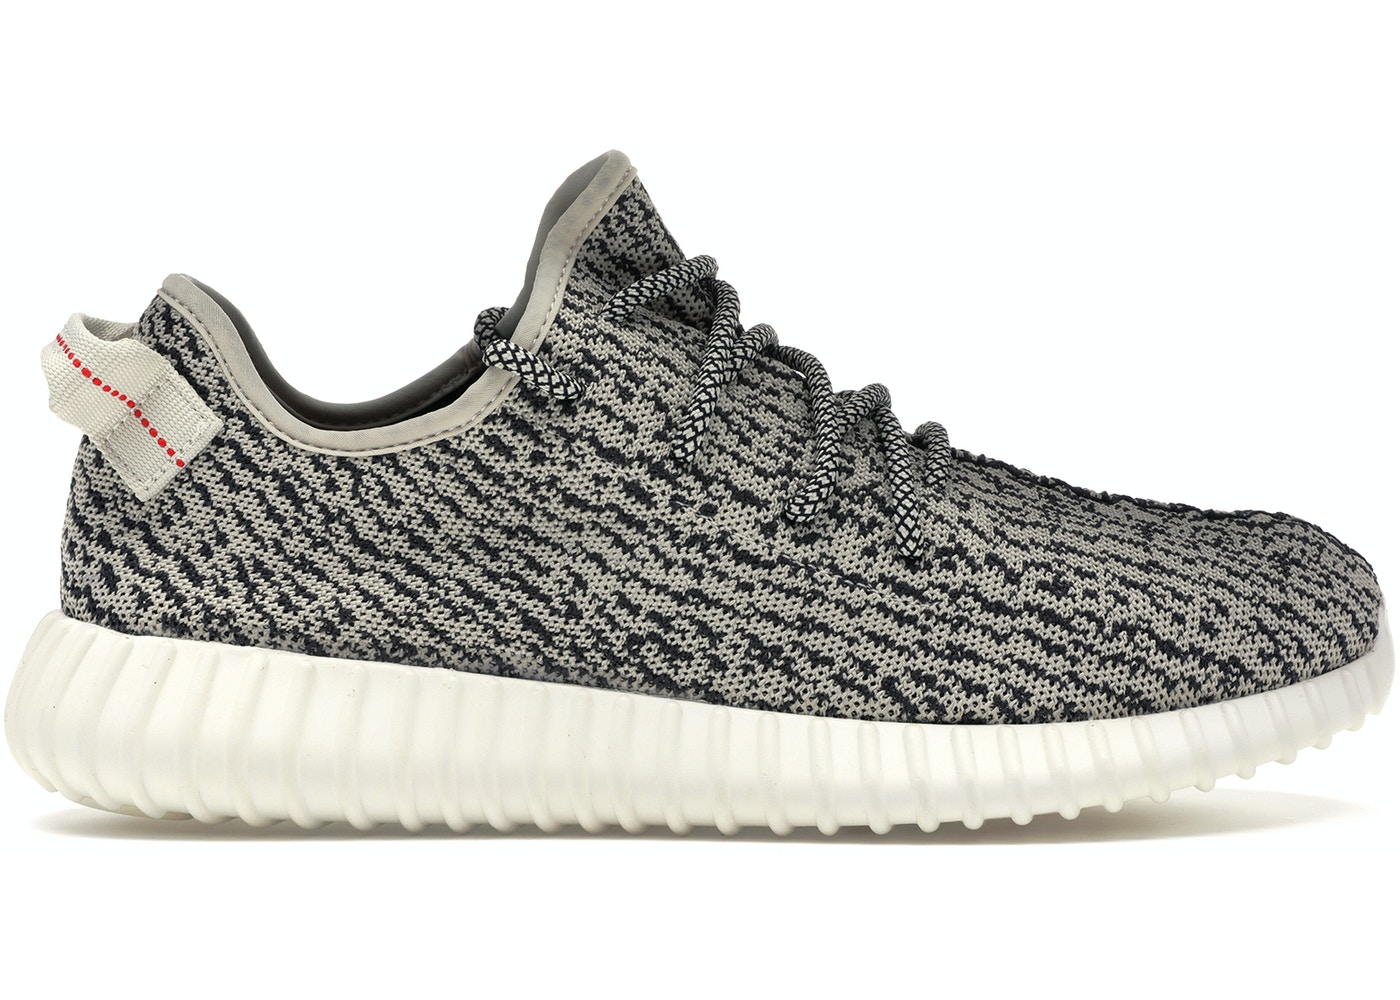 9fb1b8039c4b4 adidas Yeezy Boost 350 Turtledove - AQ4832